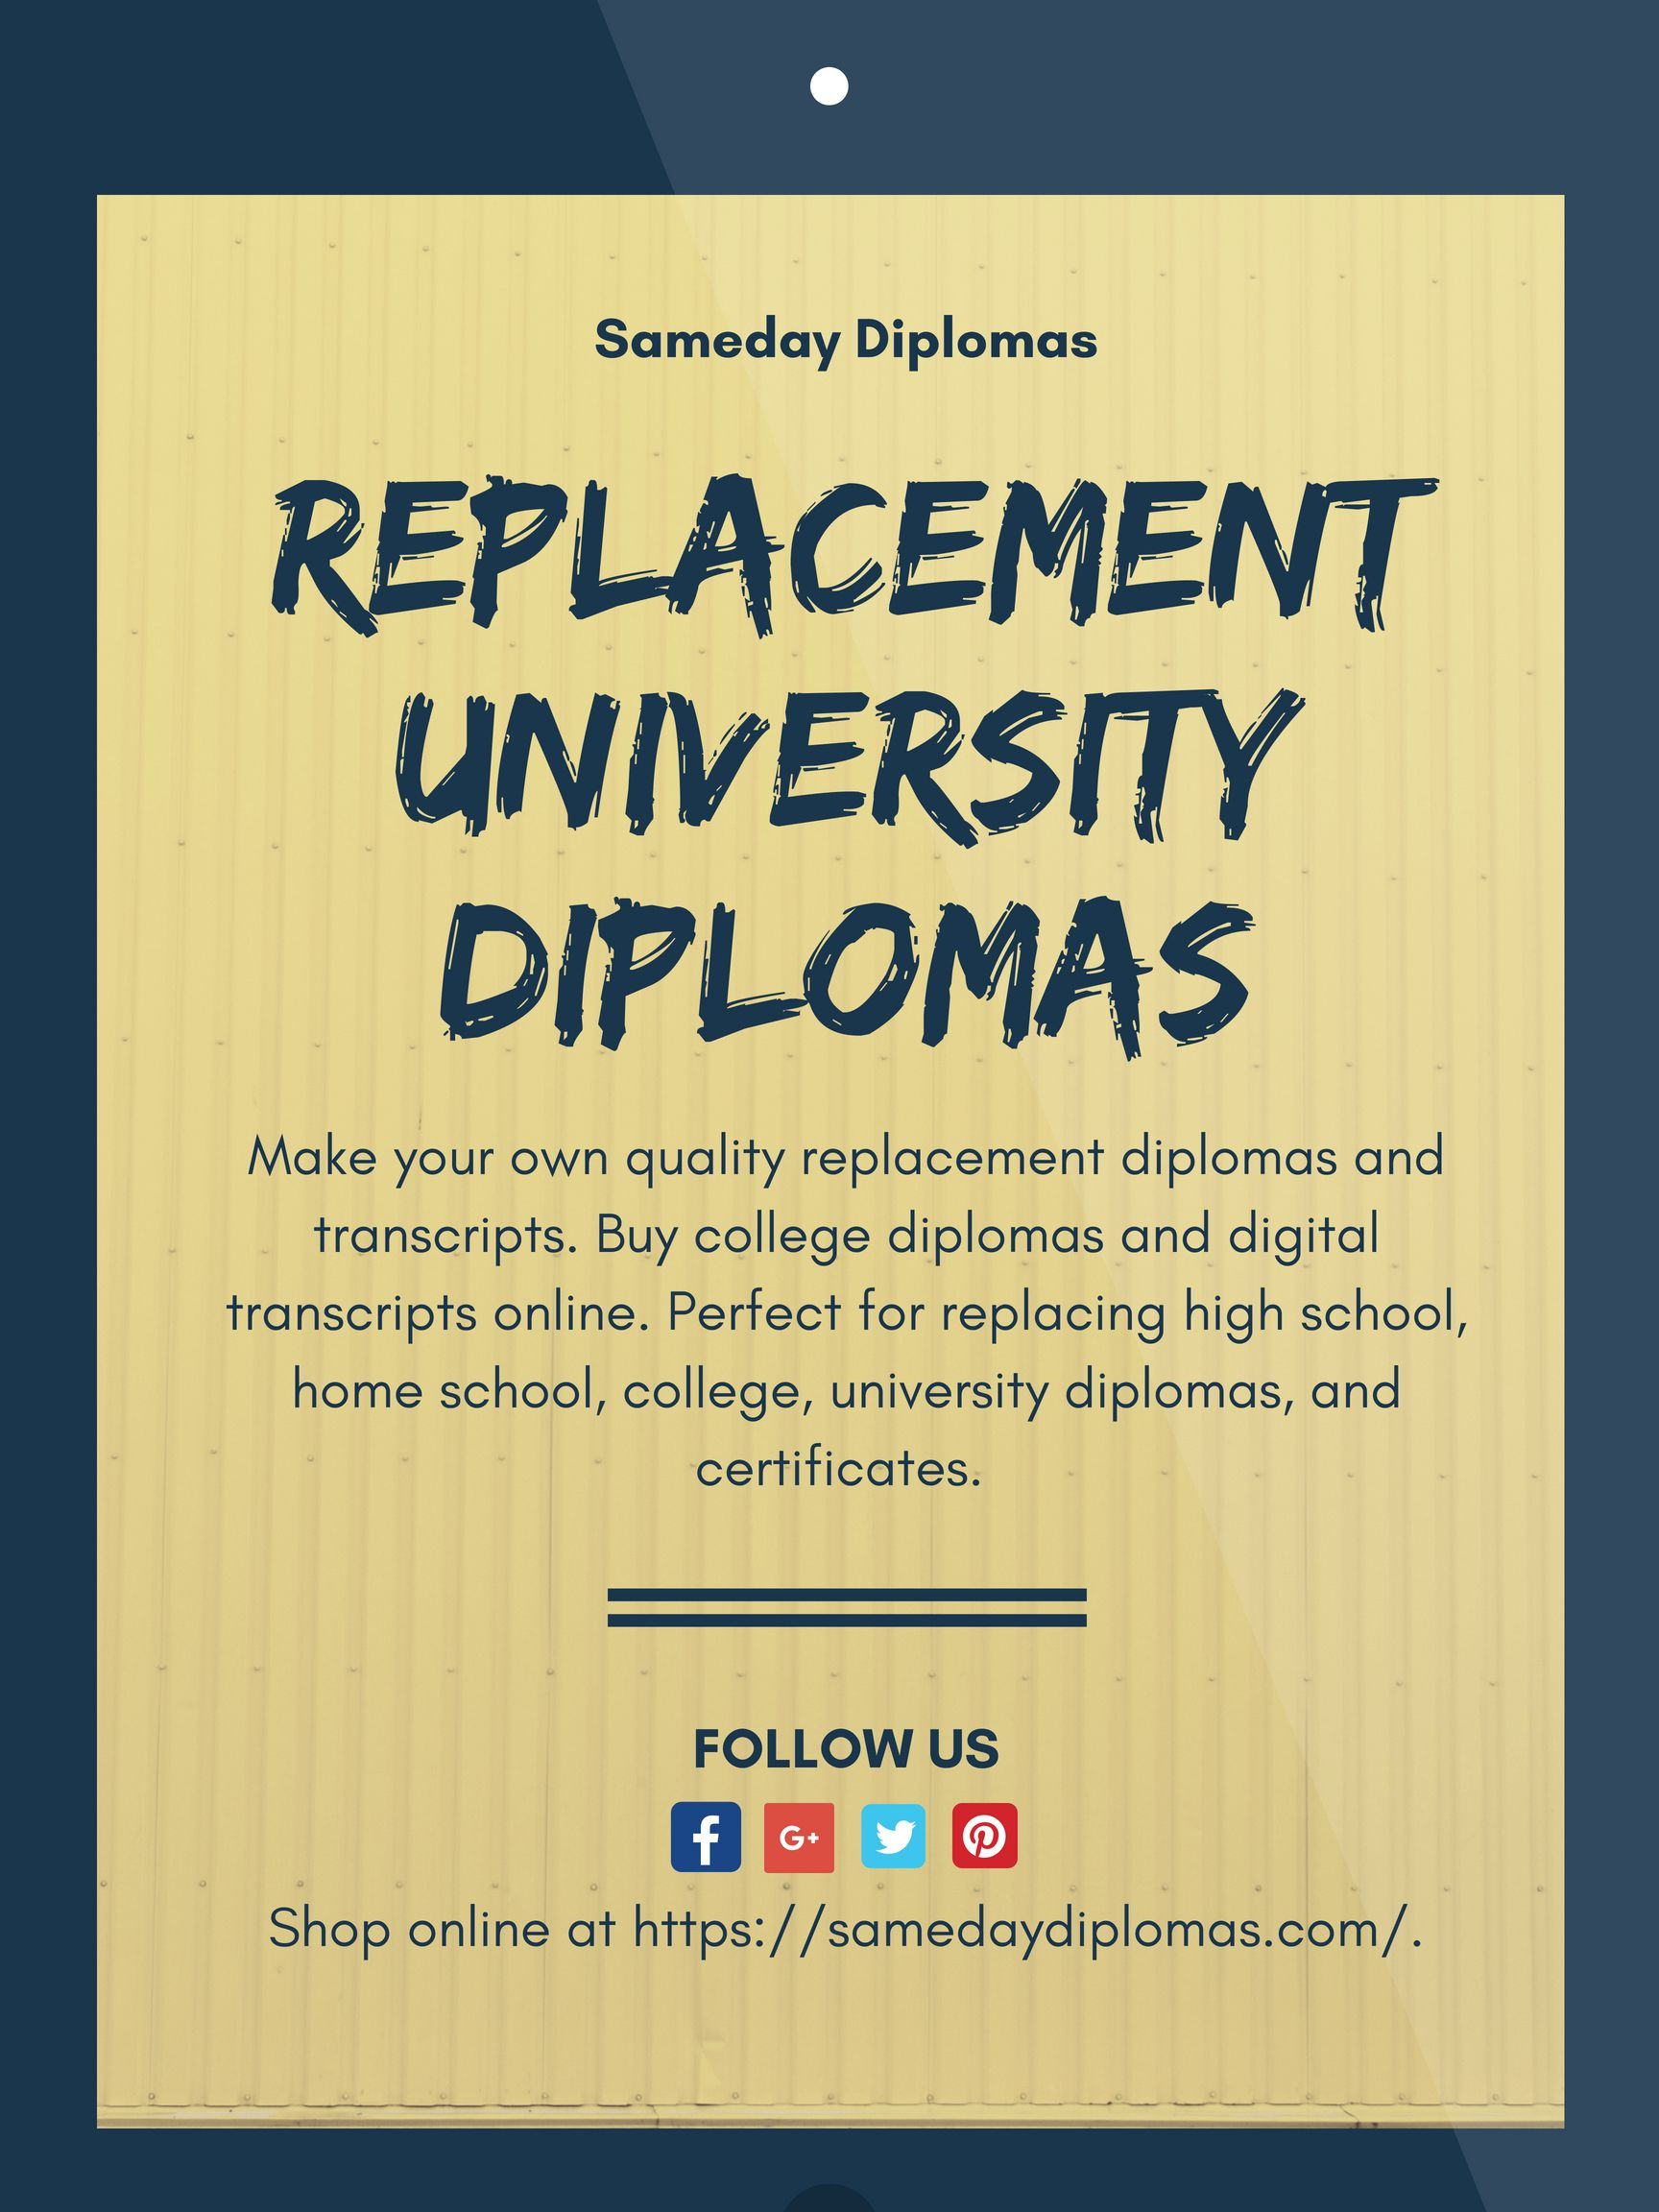 Lost or damaged your certificate? Get replacement of your university  diplomas at affordable rates. Order today!